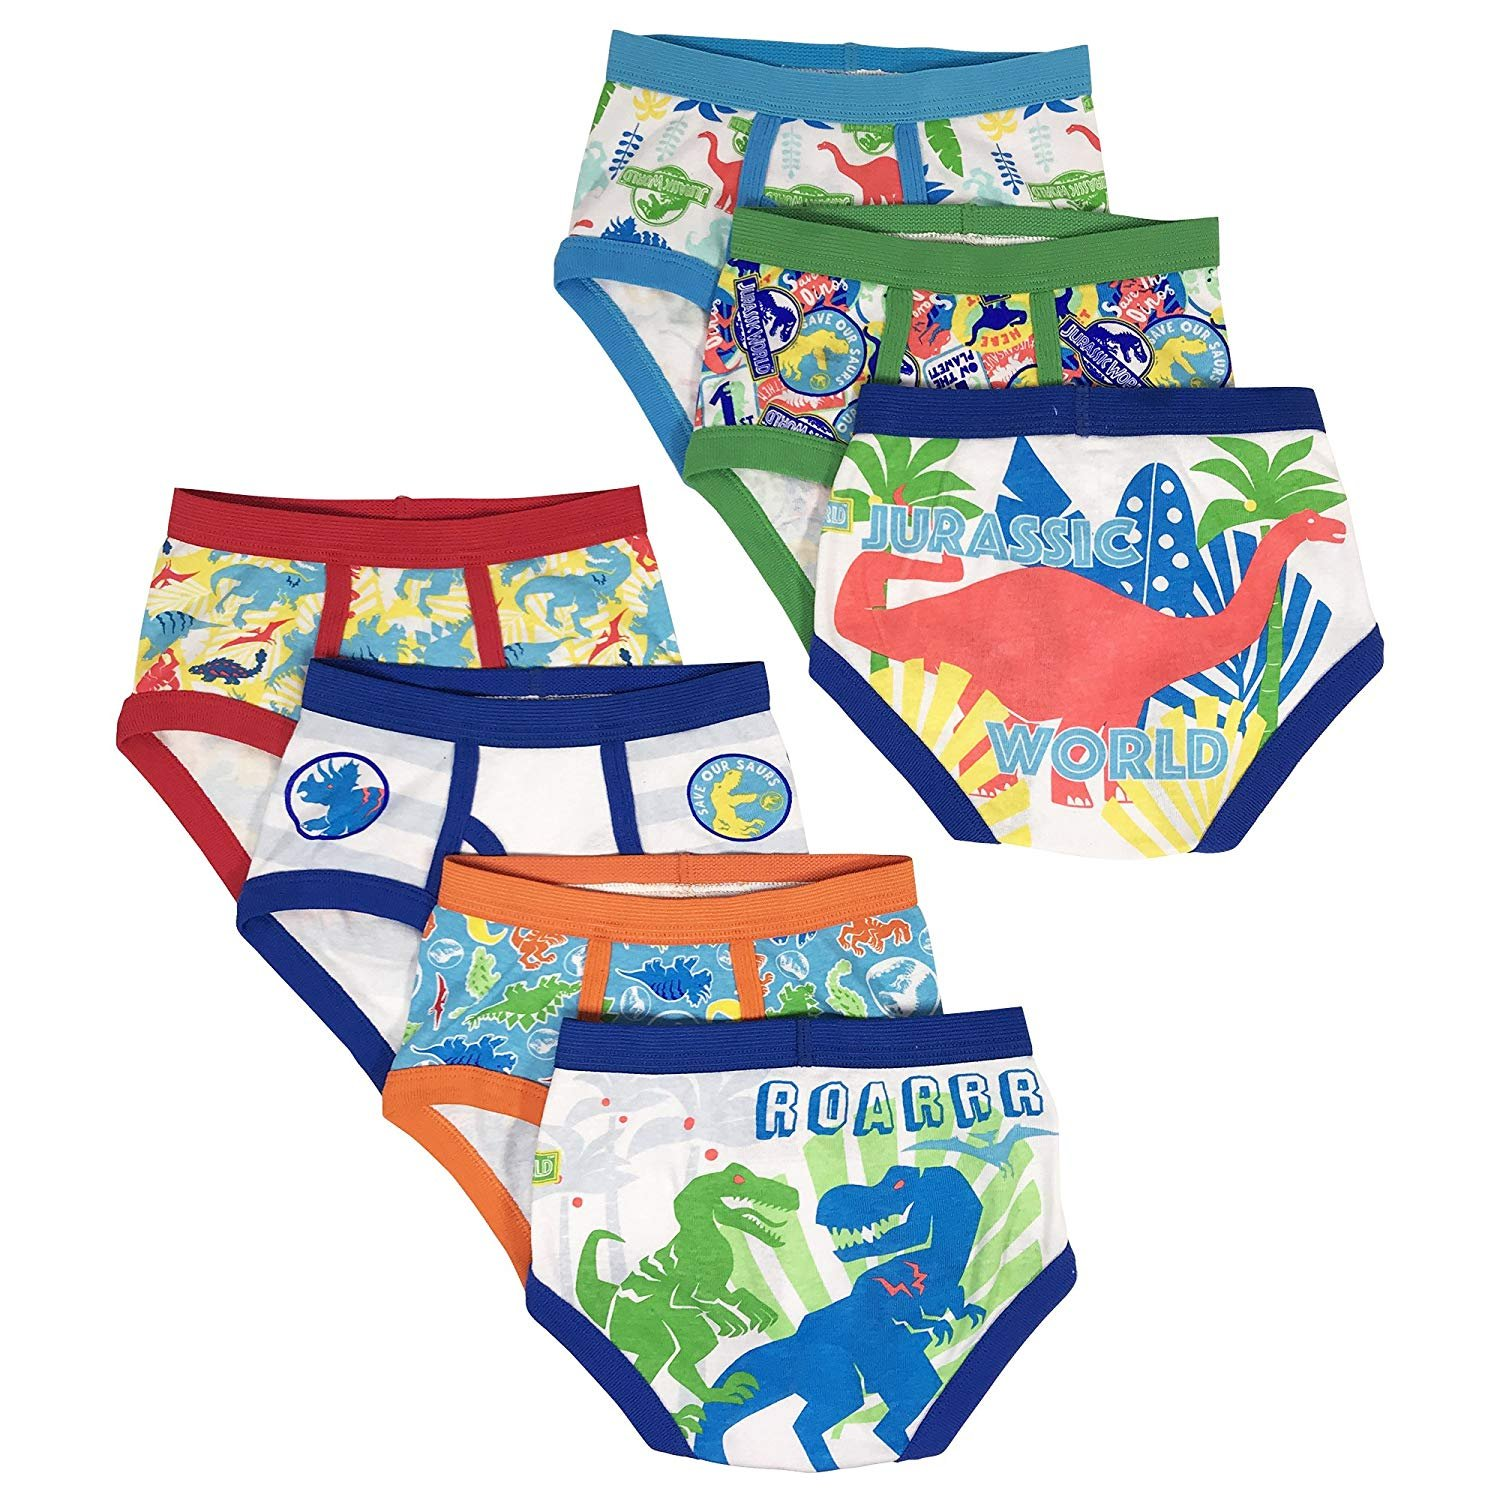 Universal Toddler Boys' 7-Pack Underwear Briefs, Jurassic World, 4t